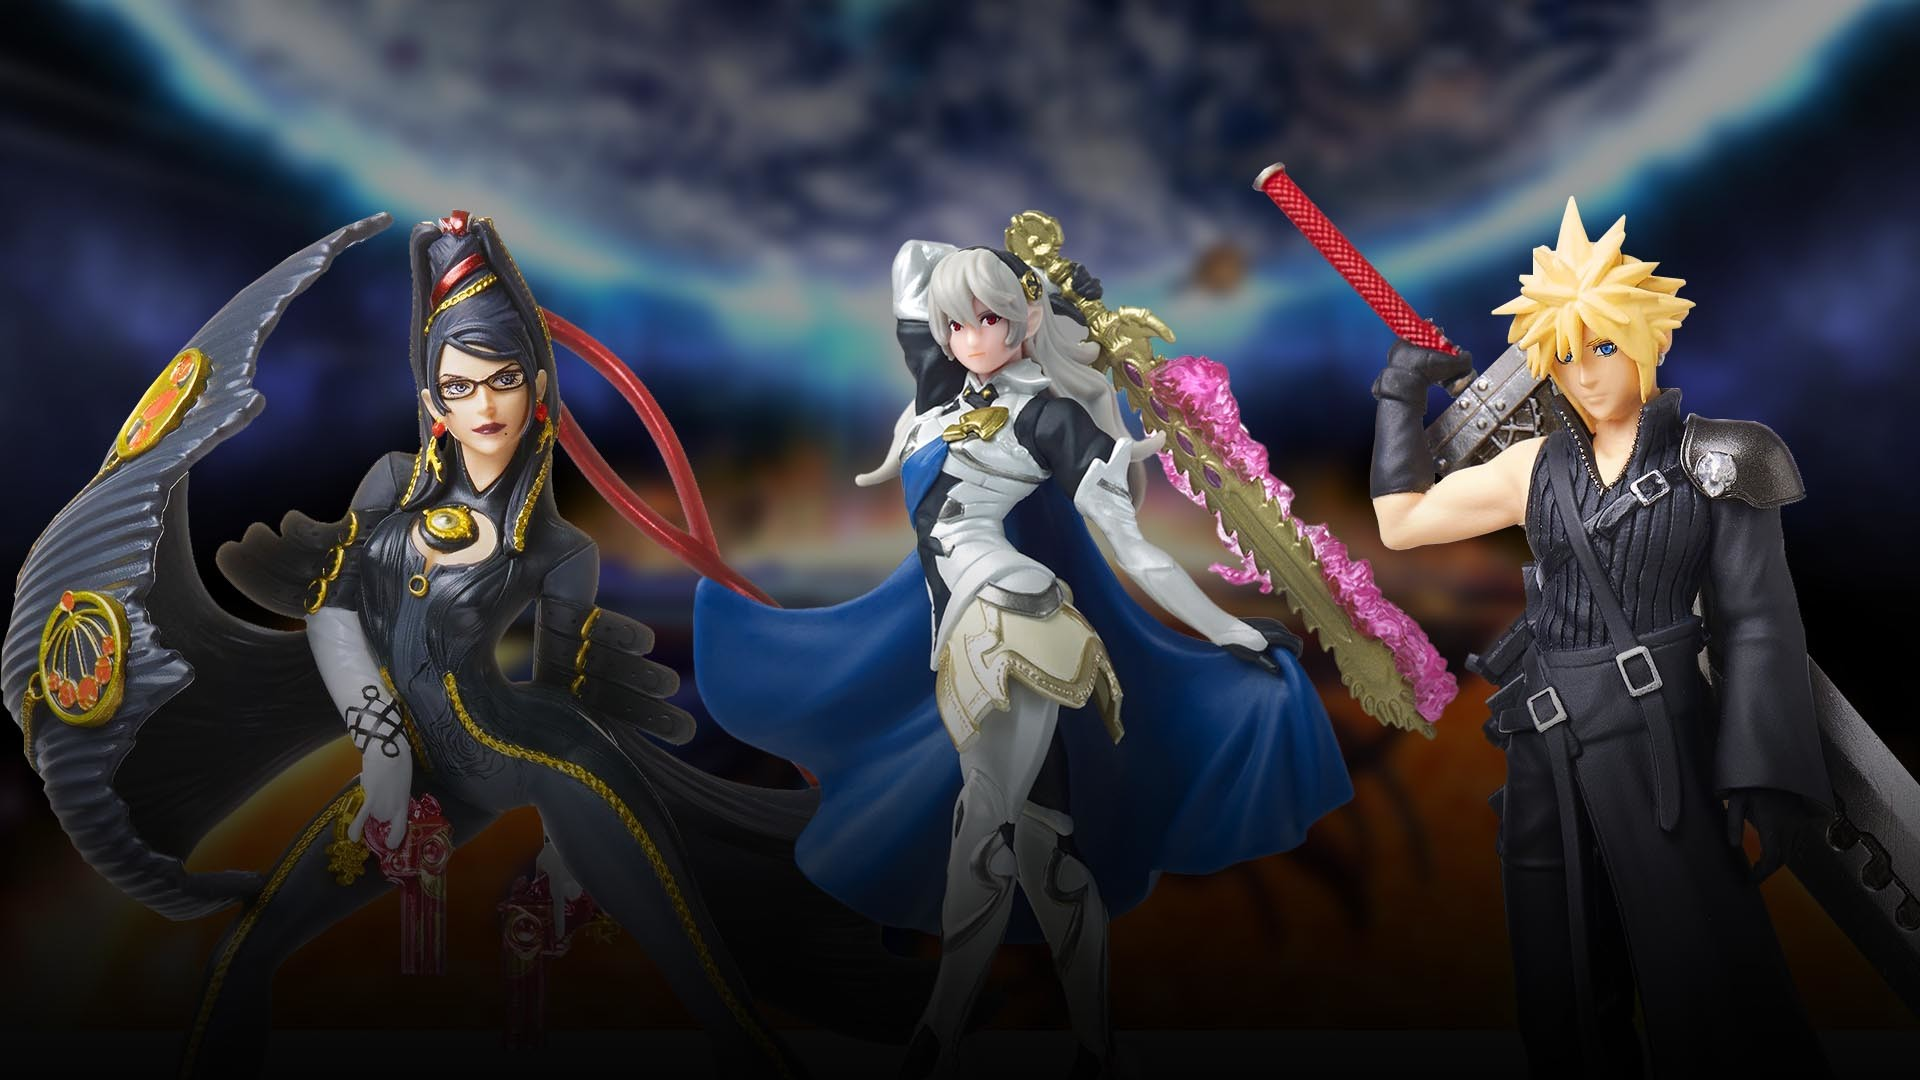 1920x1080 Unboxing | Super Smash Bros. Cloud, Corrin and Bayonetta amiibo (Player 2)  | Nintendo Wire